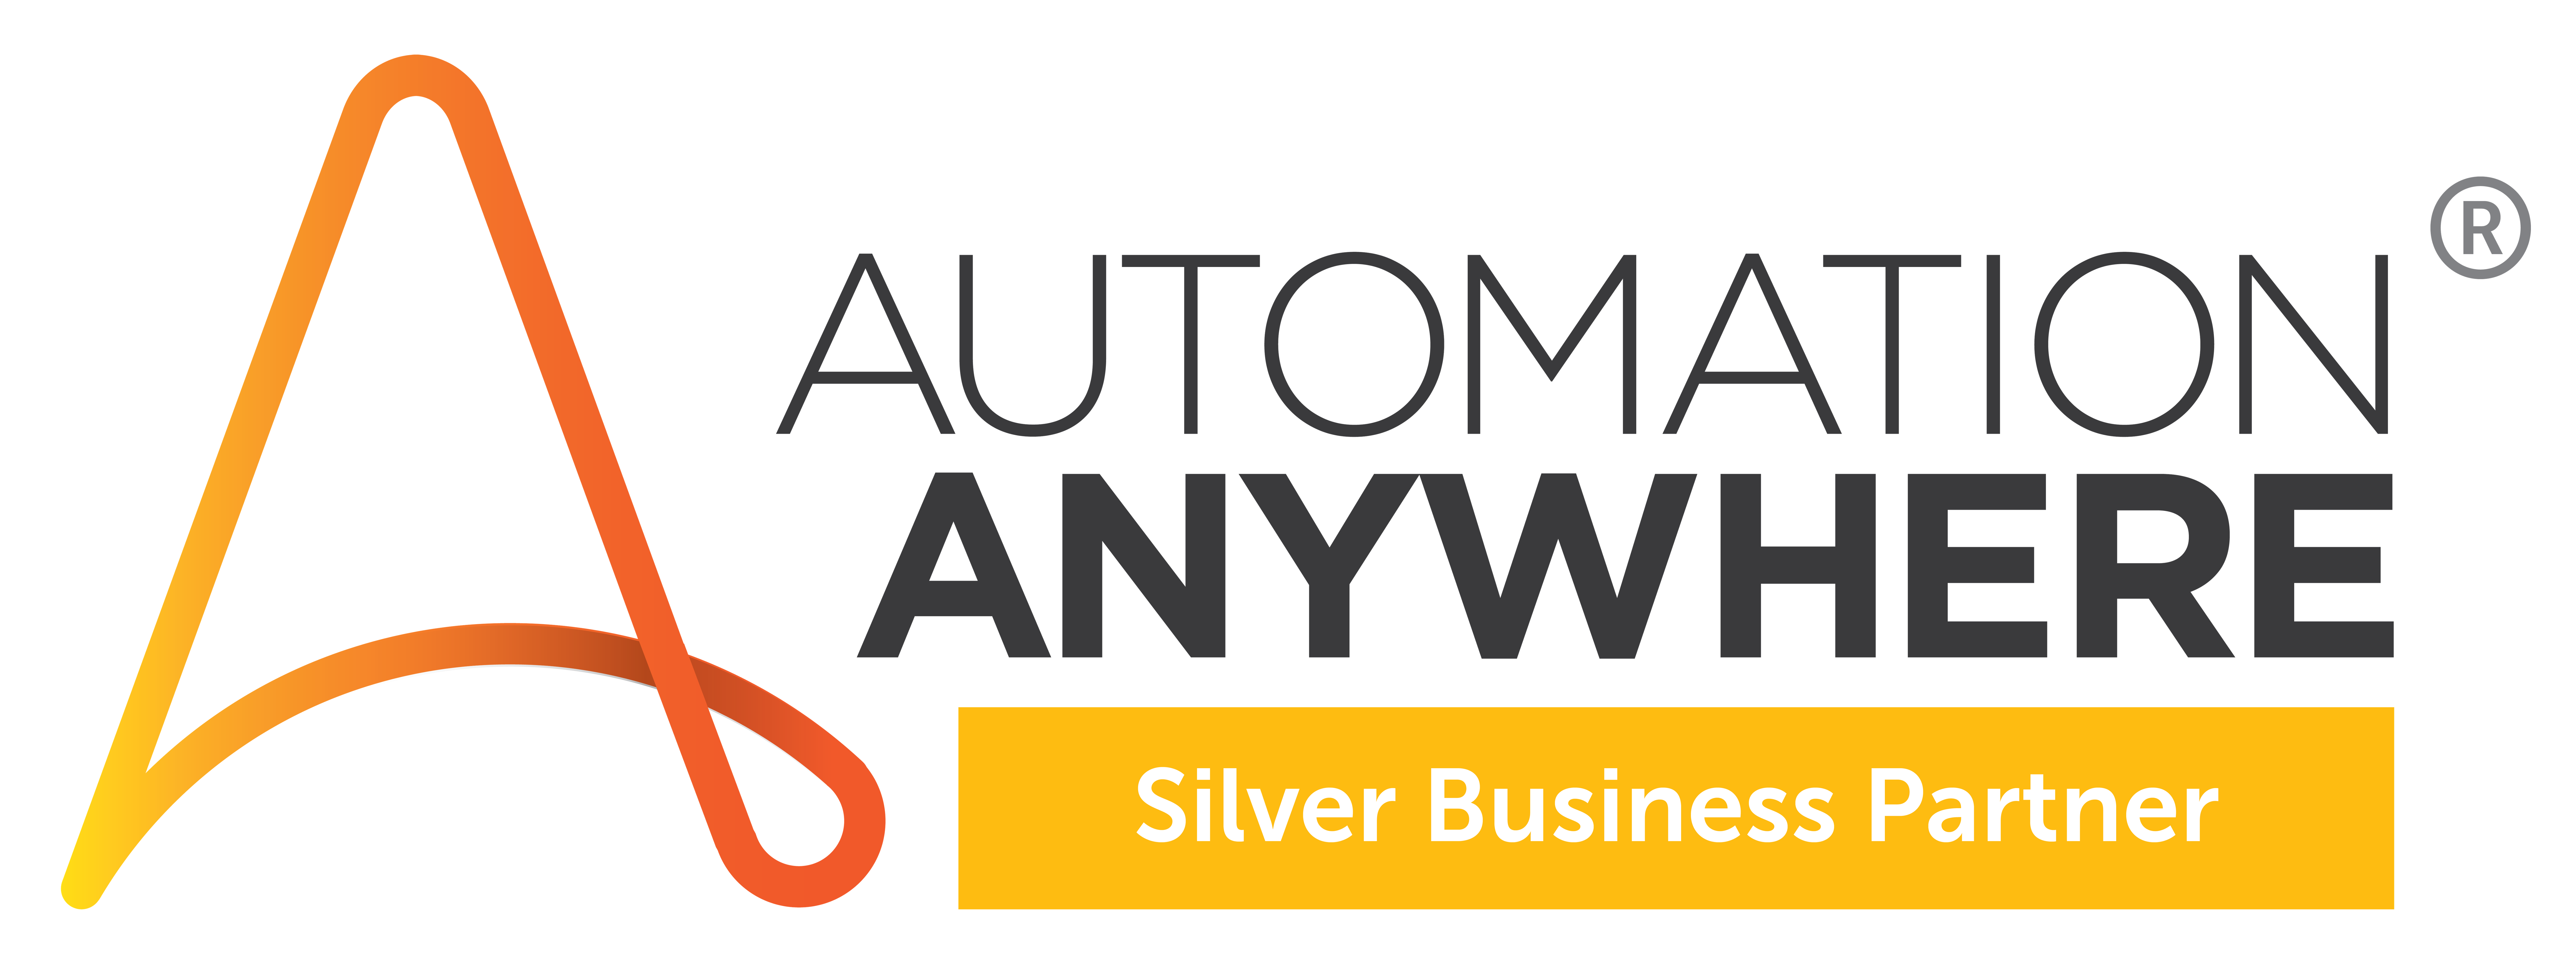 Automation Anywhere Silver Business Partner